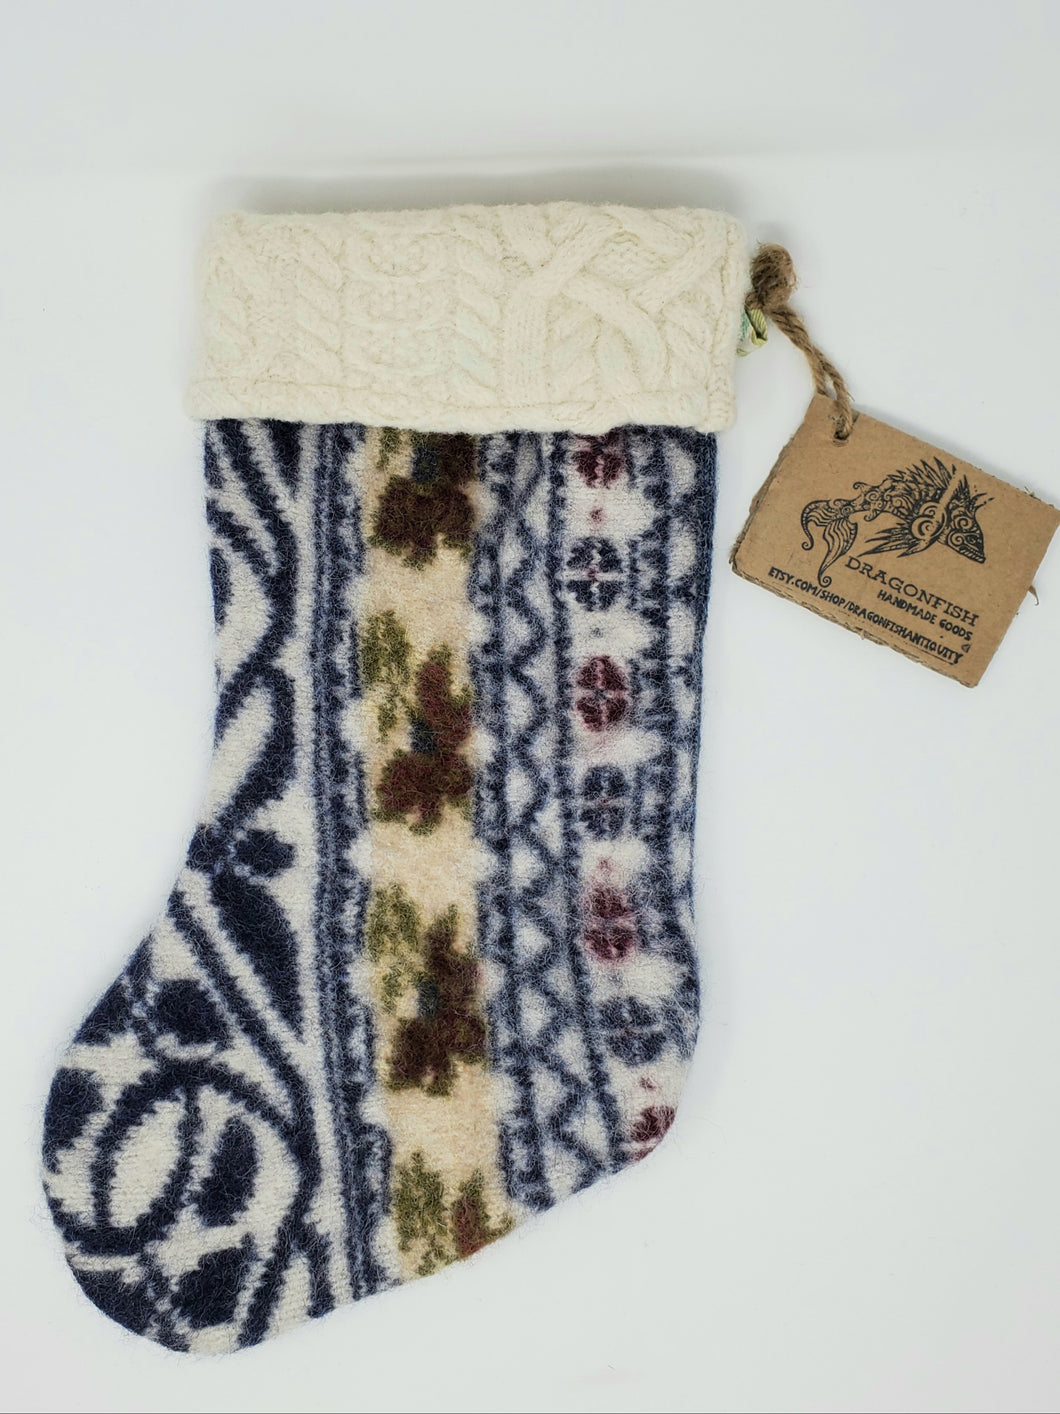 Felted Sweater Fabric Holiday Stocking -  Heirloom Blue & Flower Wool